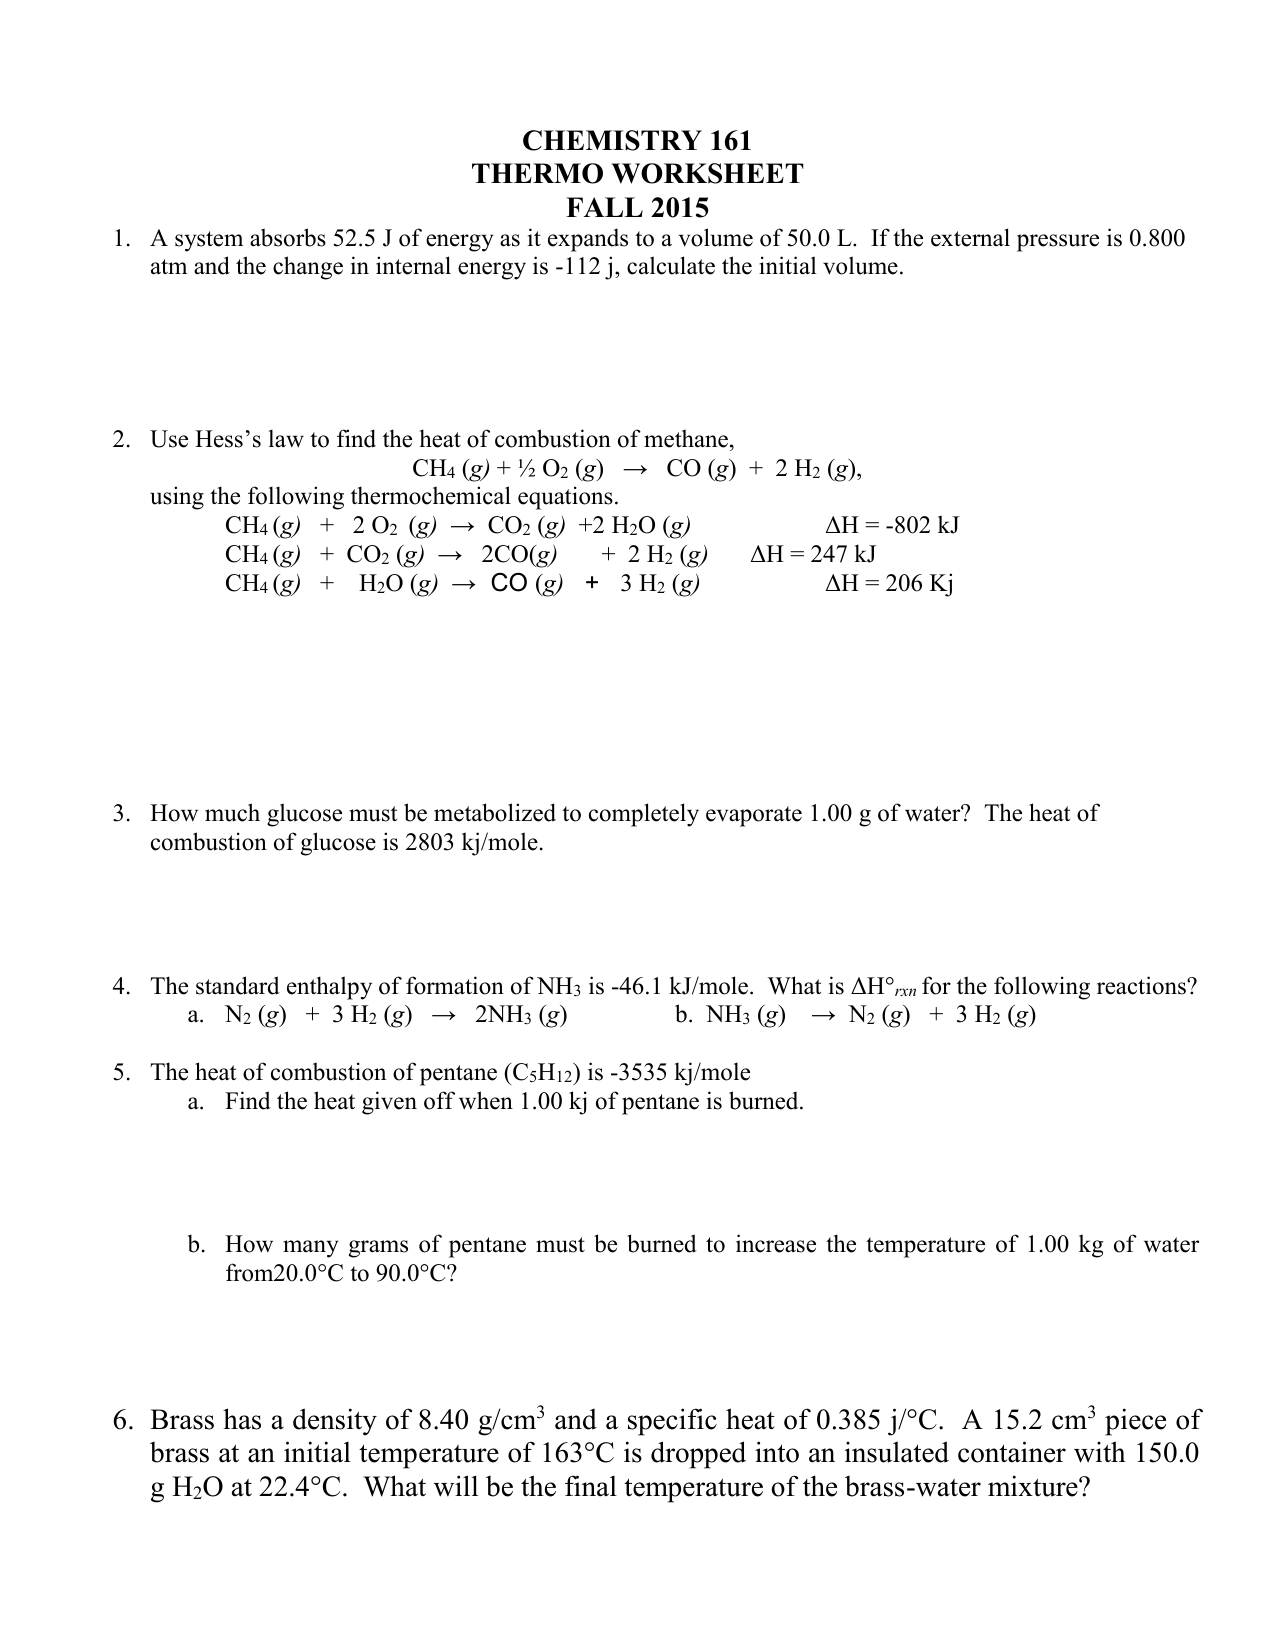 Thermochemistry worksheet #1